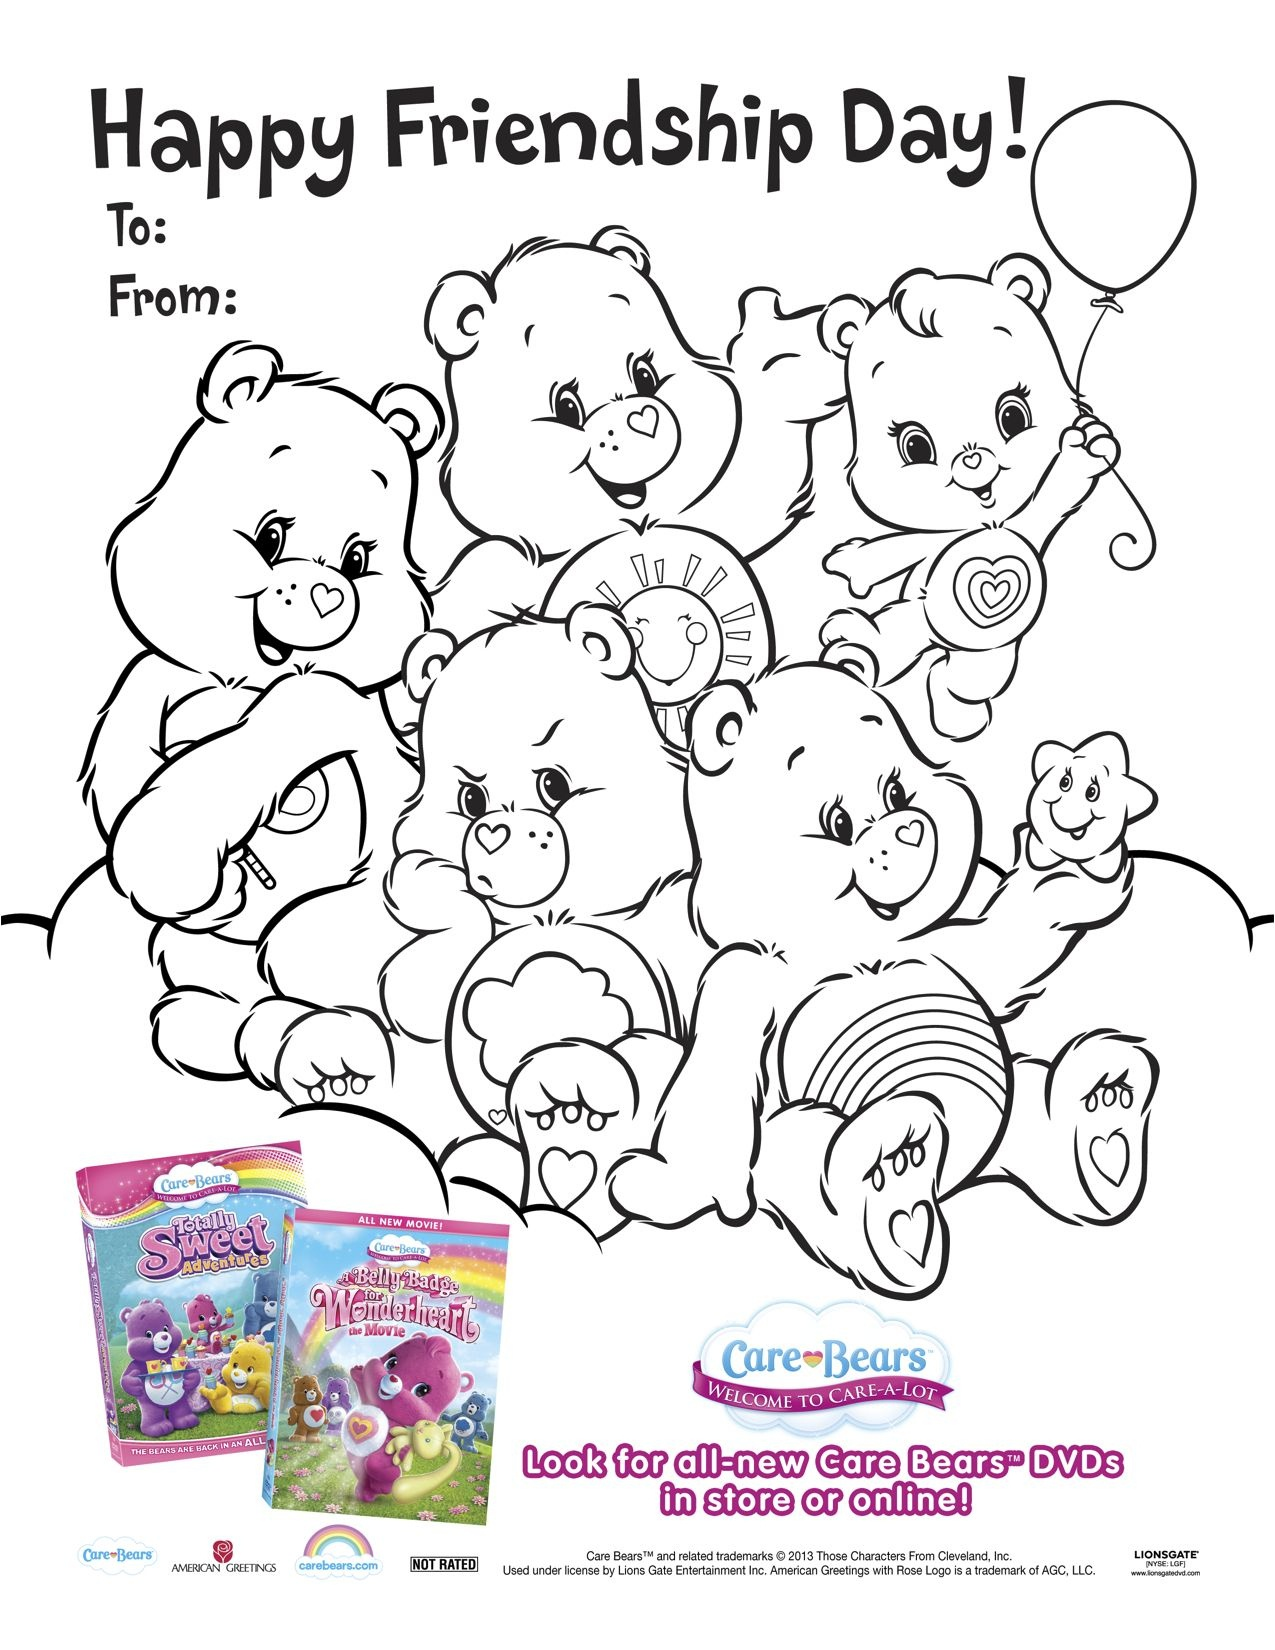 Care Bears Wonderheart Printable Friendship Day Coloring Page - Free Printable Bff Coloring Pages